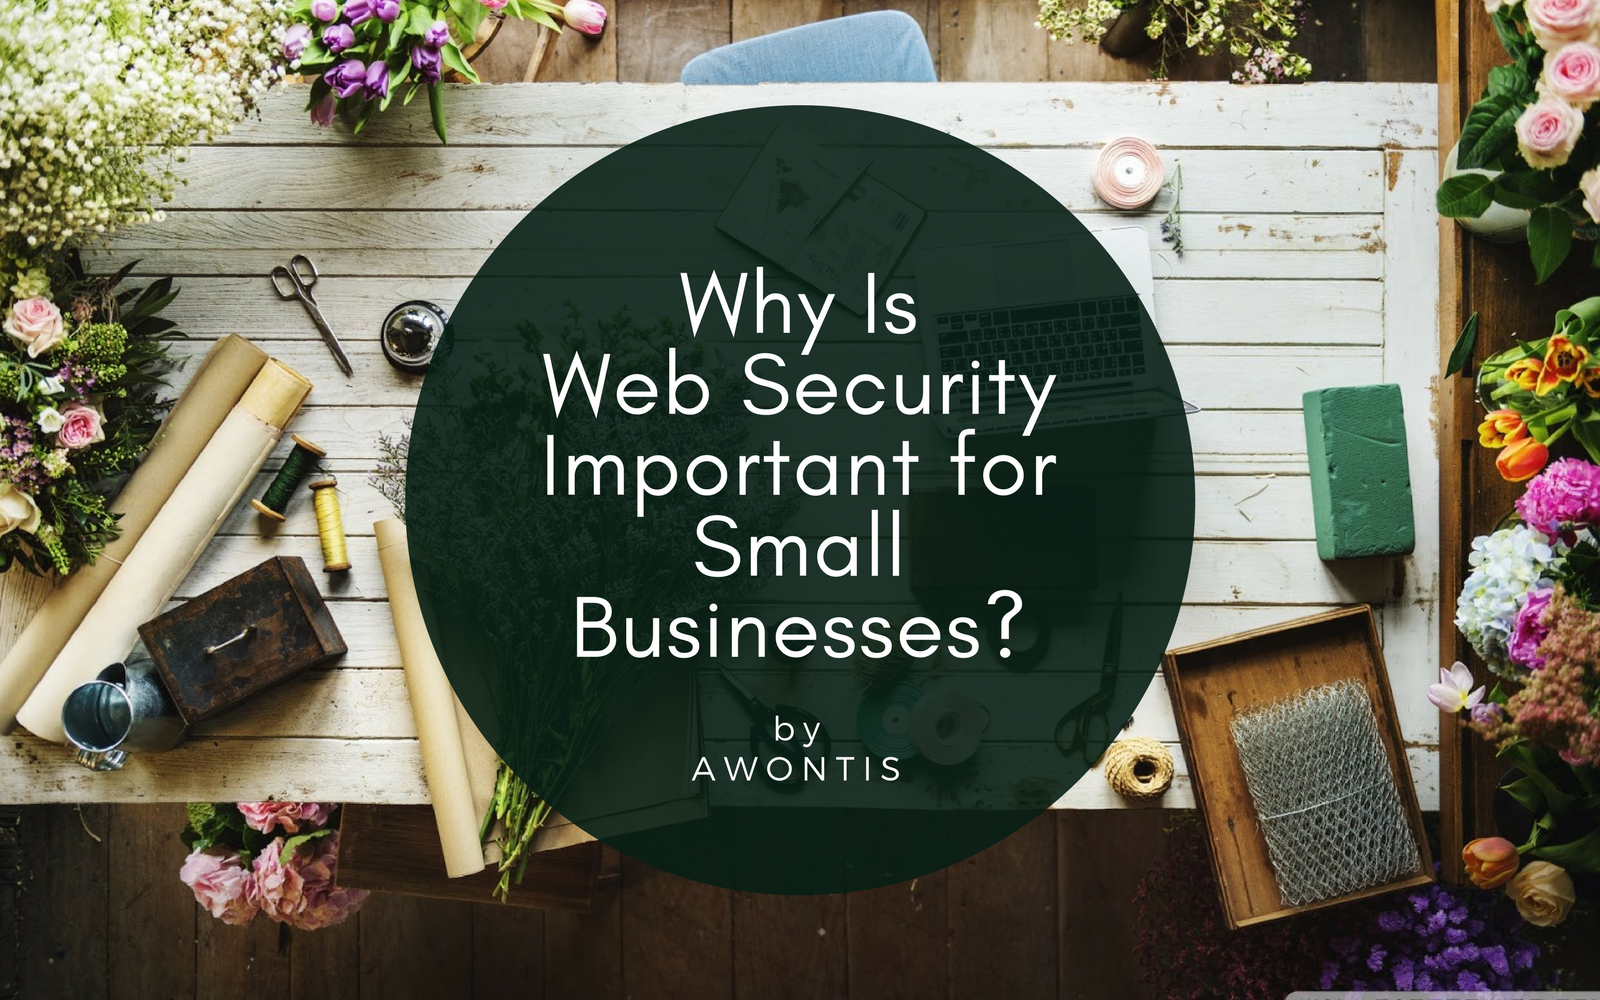 Why Is Web Security Important for Small Businesses?